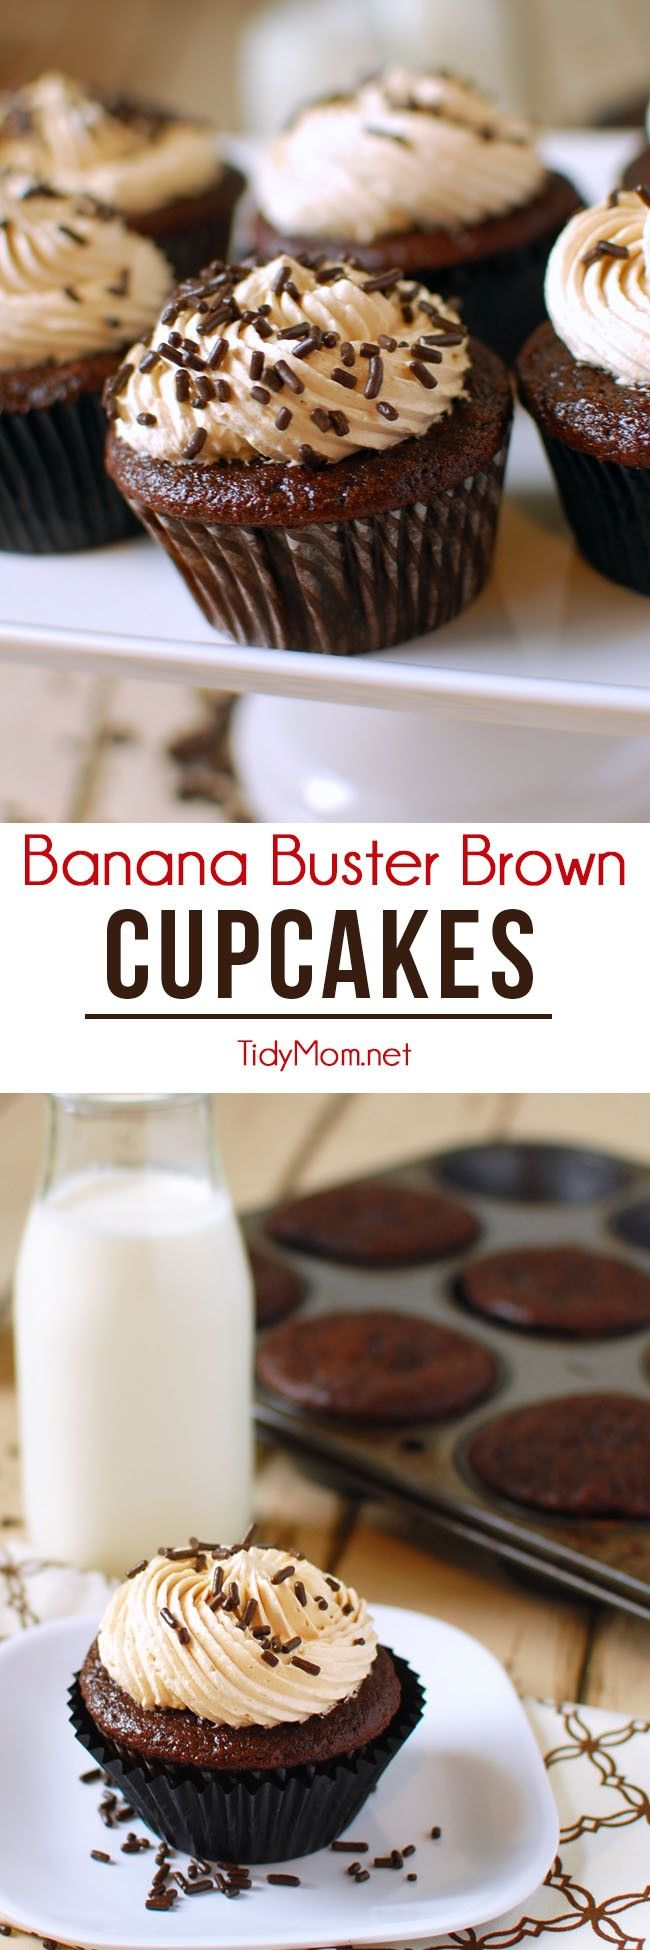 Ripe bananas and chocolate make a moist delicious cupcake, topped with peanut butter brown sugar buttercream for Banana Buster Brown Cupcakes. Recipe at TidyMom.net